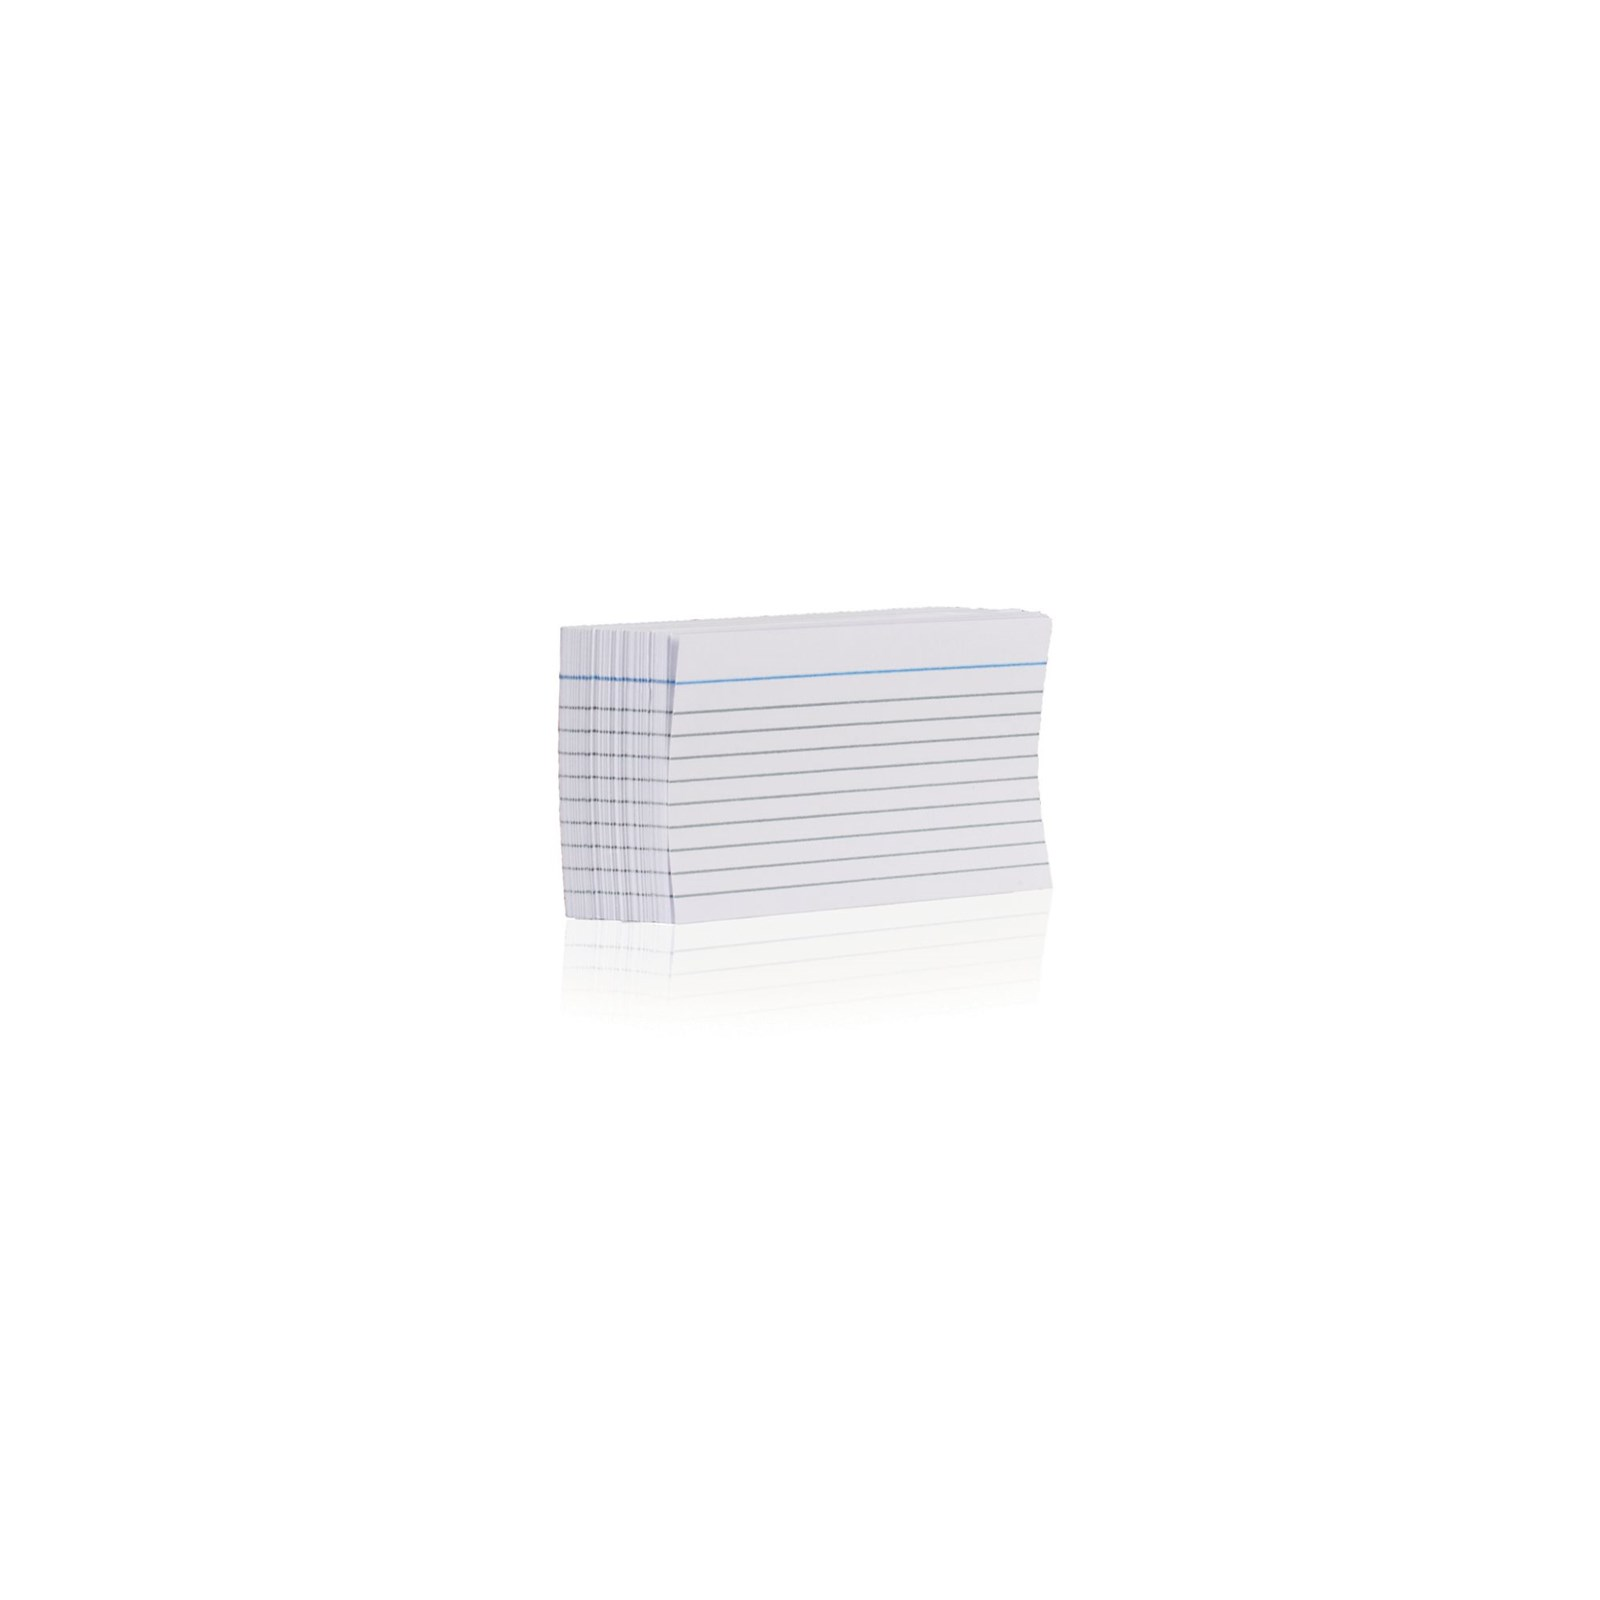 Record Card 127 x 76mm White - Pack of 100